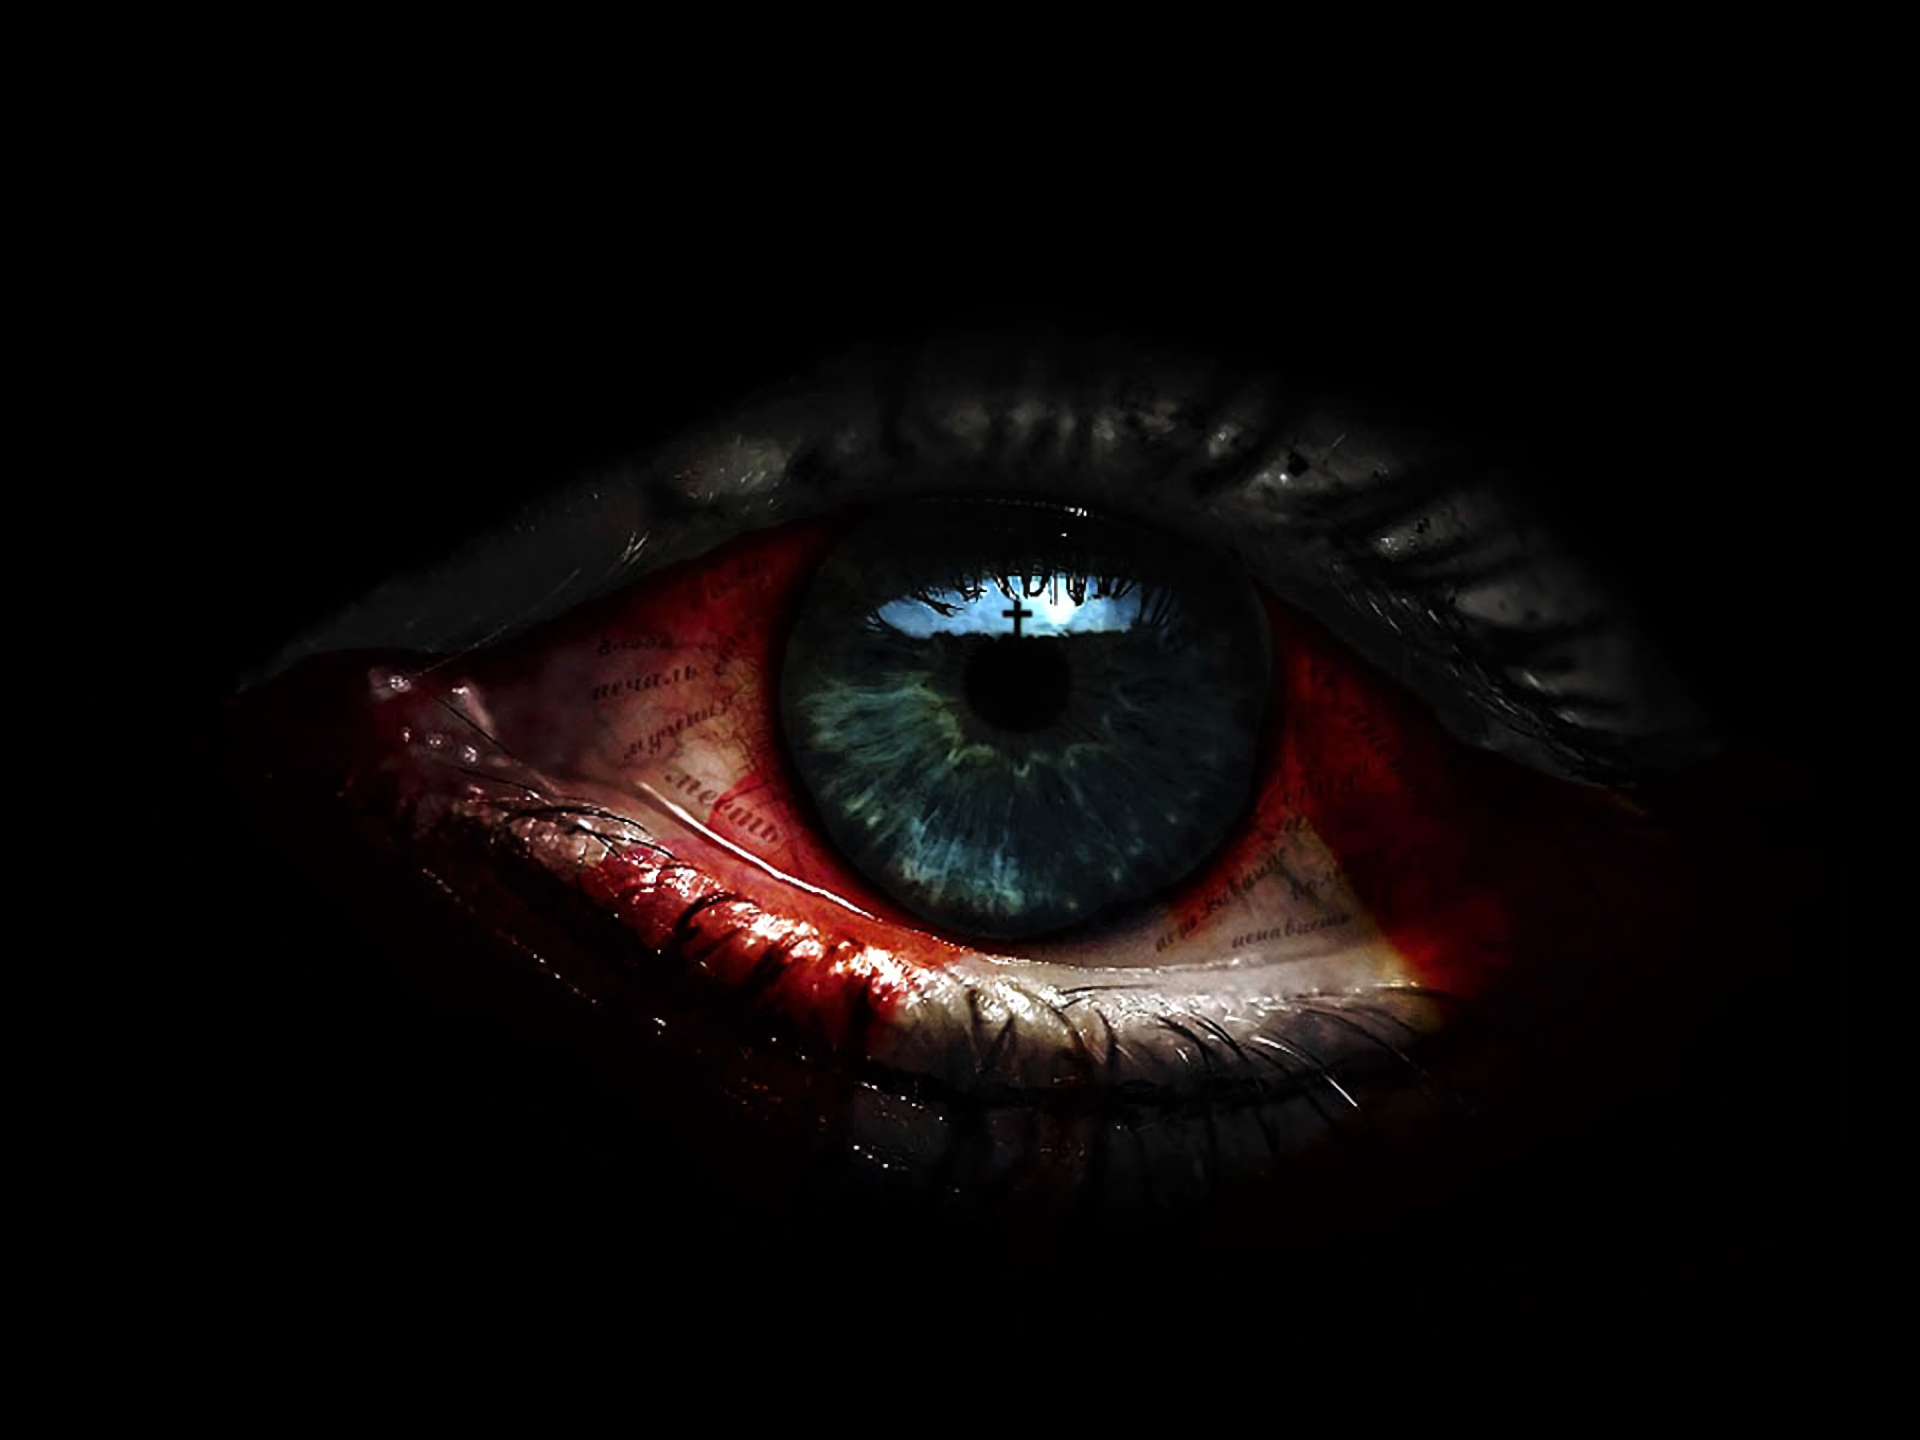 Scary Eye HD Wallpaper | Background Image | 1920x1440 | ID ...